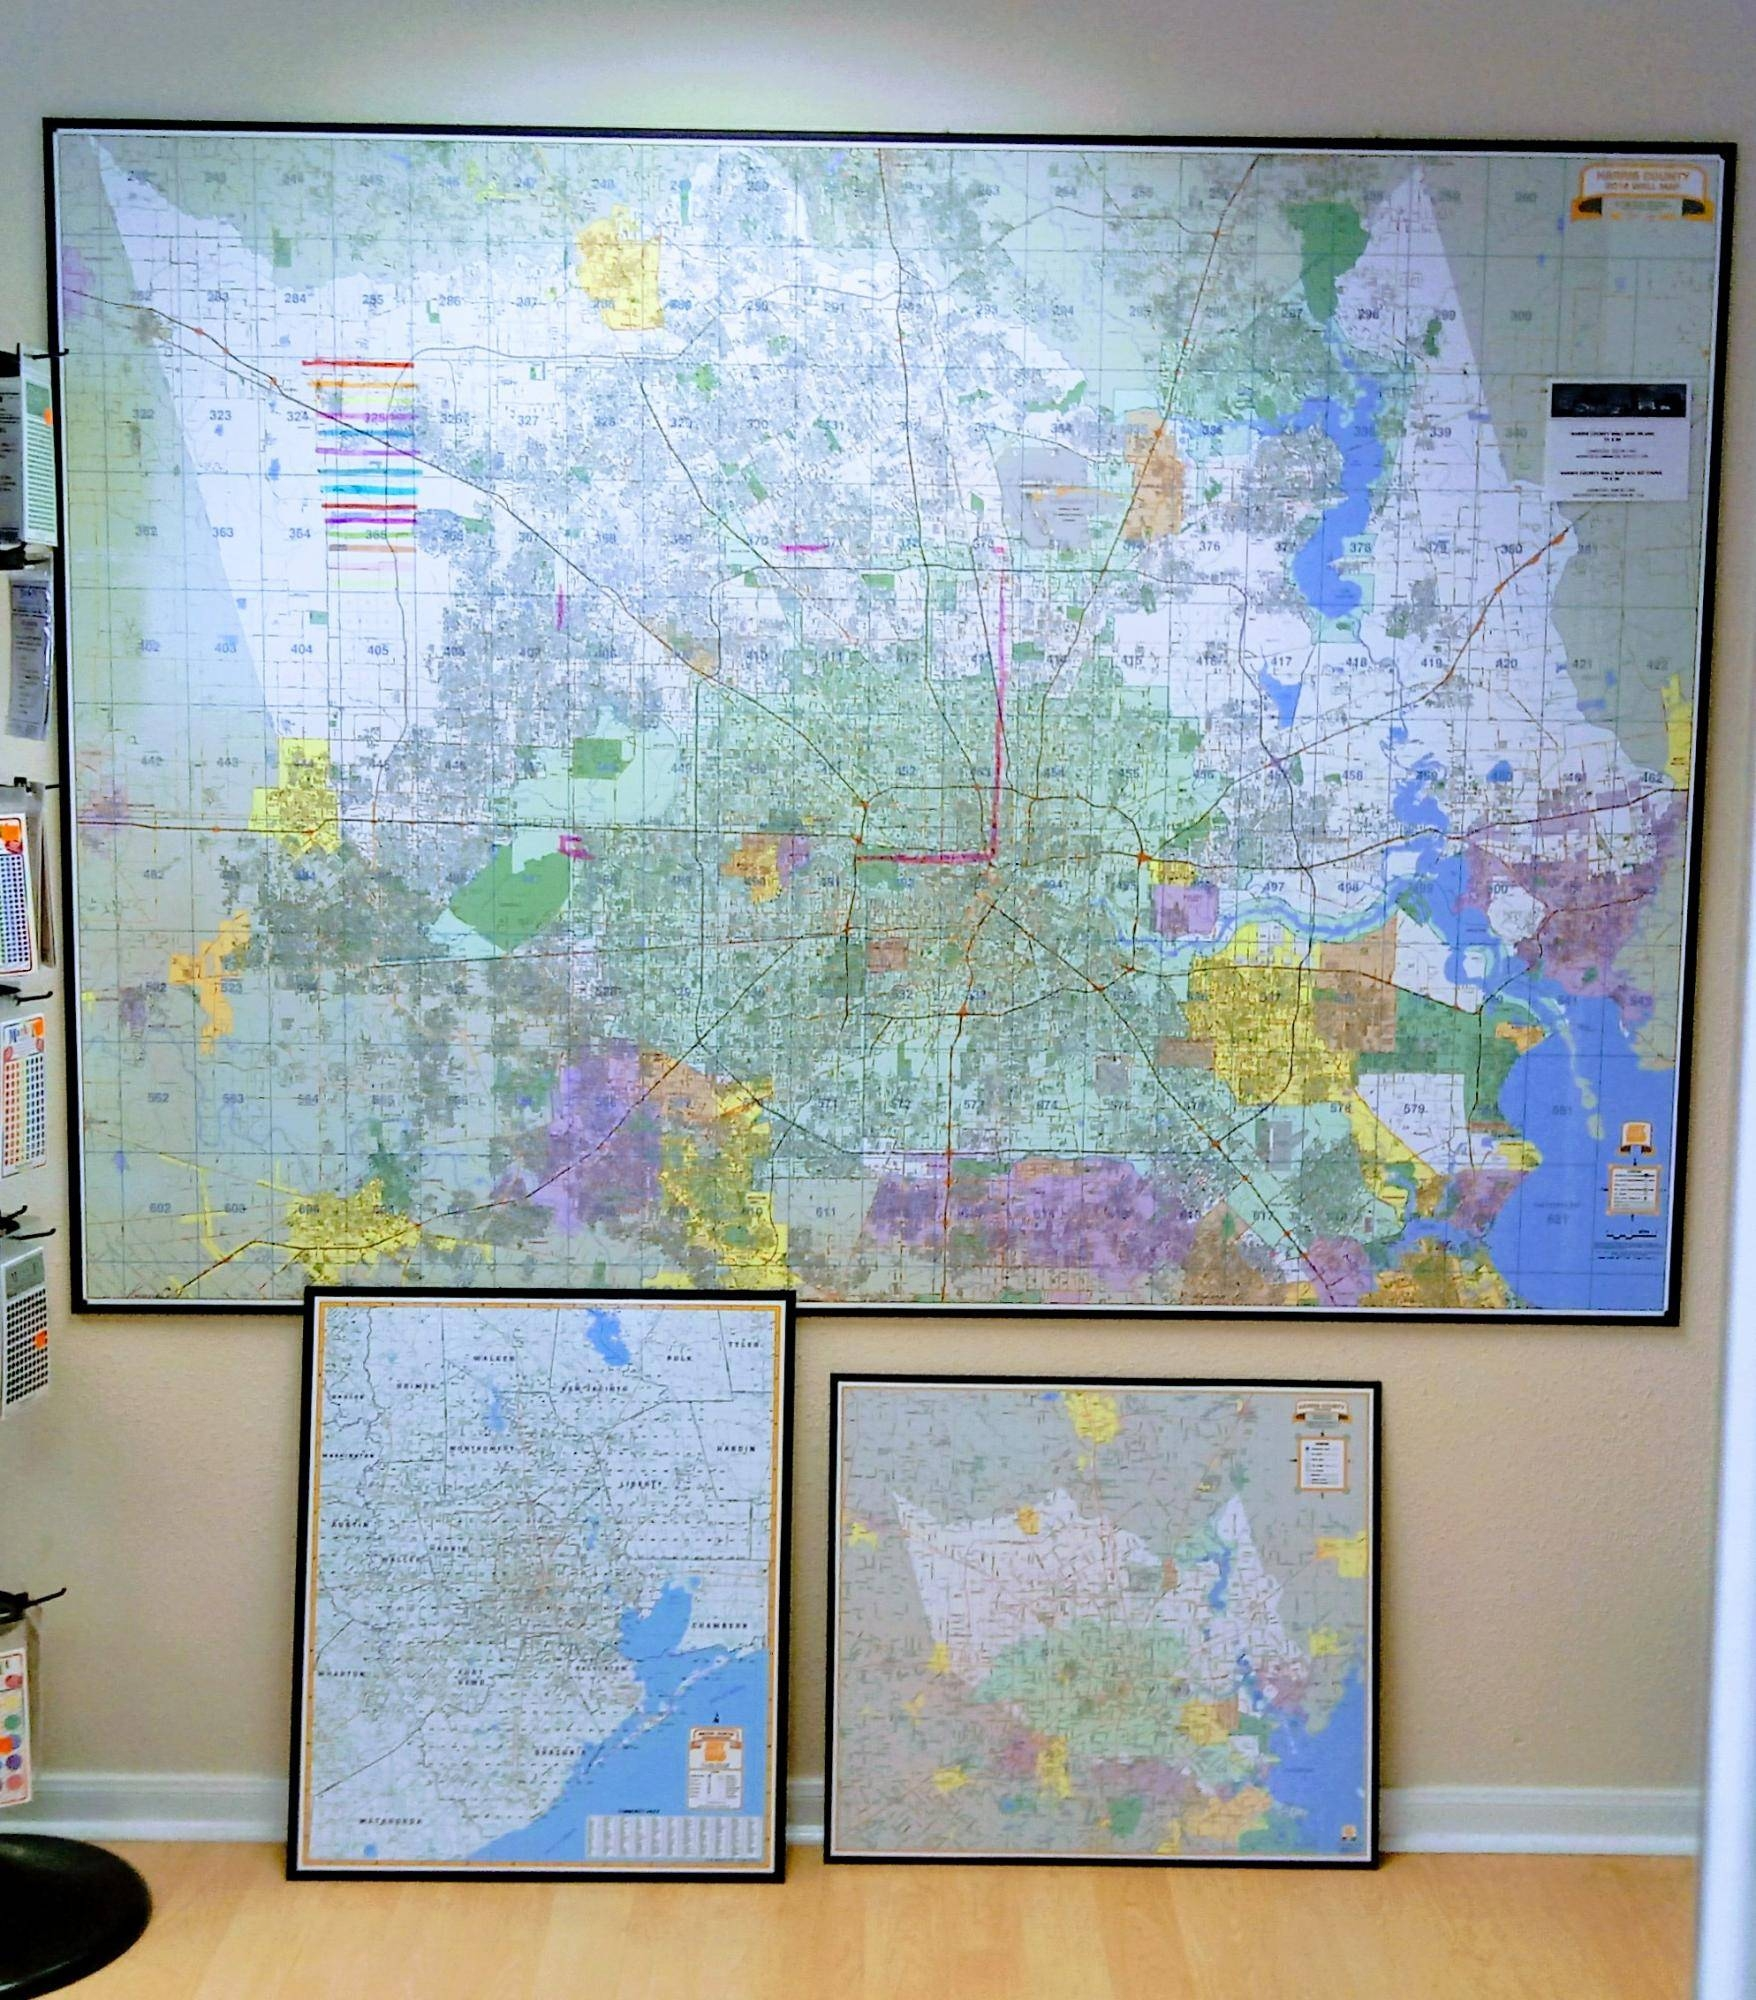 Houston Maps, Globes, Gis, Key Map Atlases Throughout Recent Houston Map Wall Art (Gallery 10 of 20)